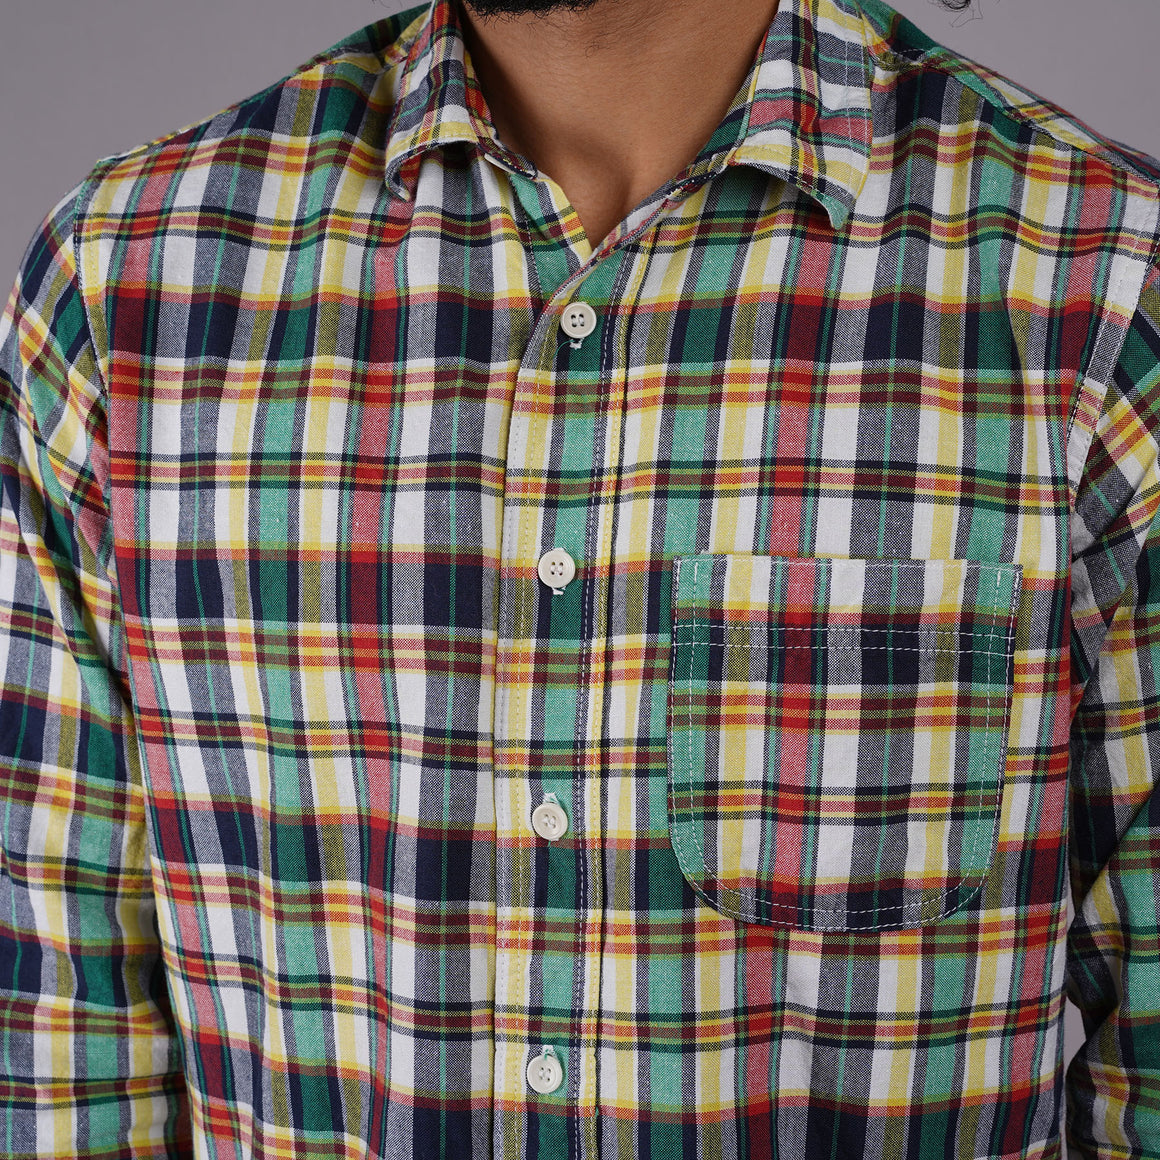 Chainstitch Shirt Mint Julep Madras